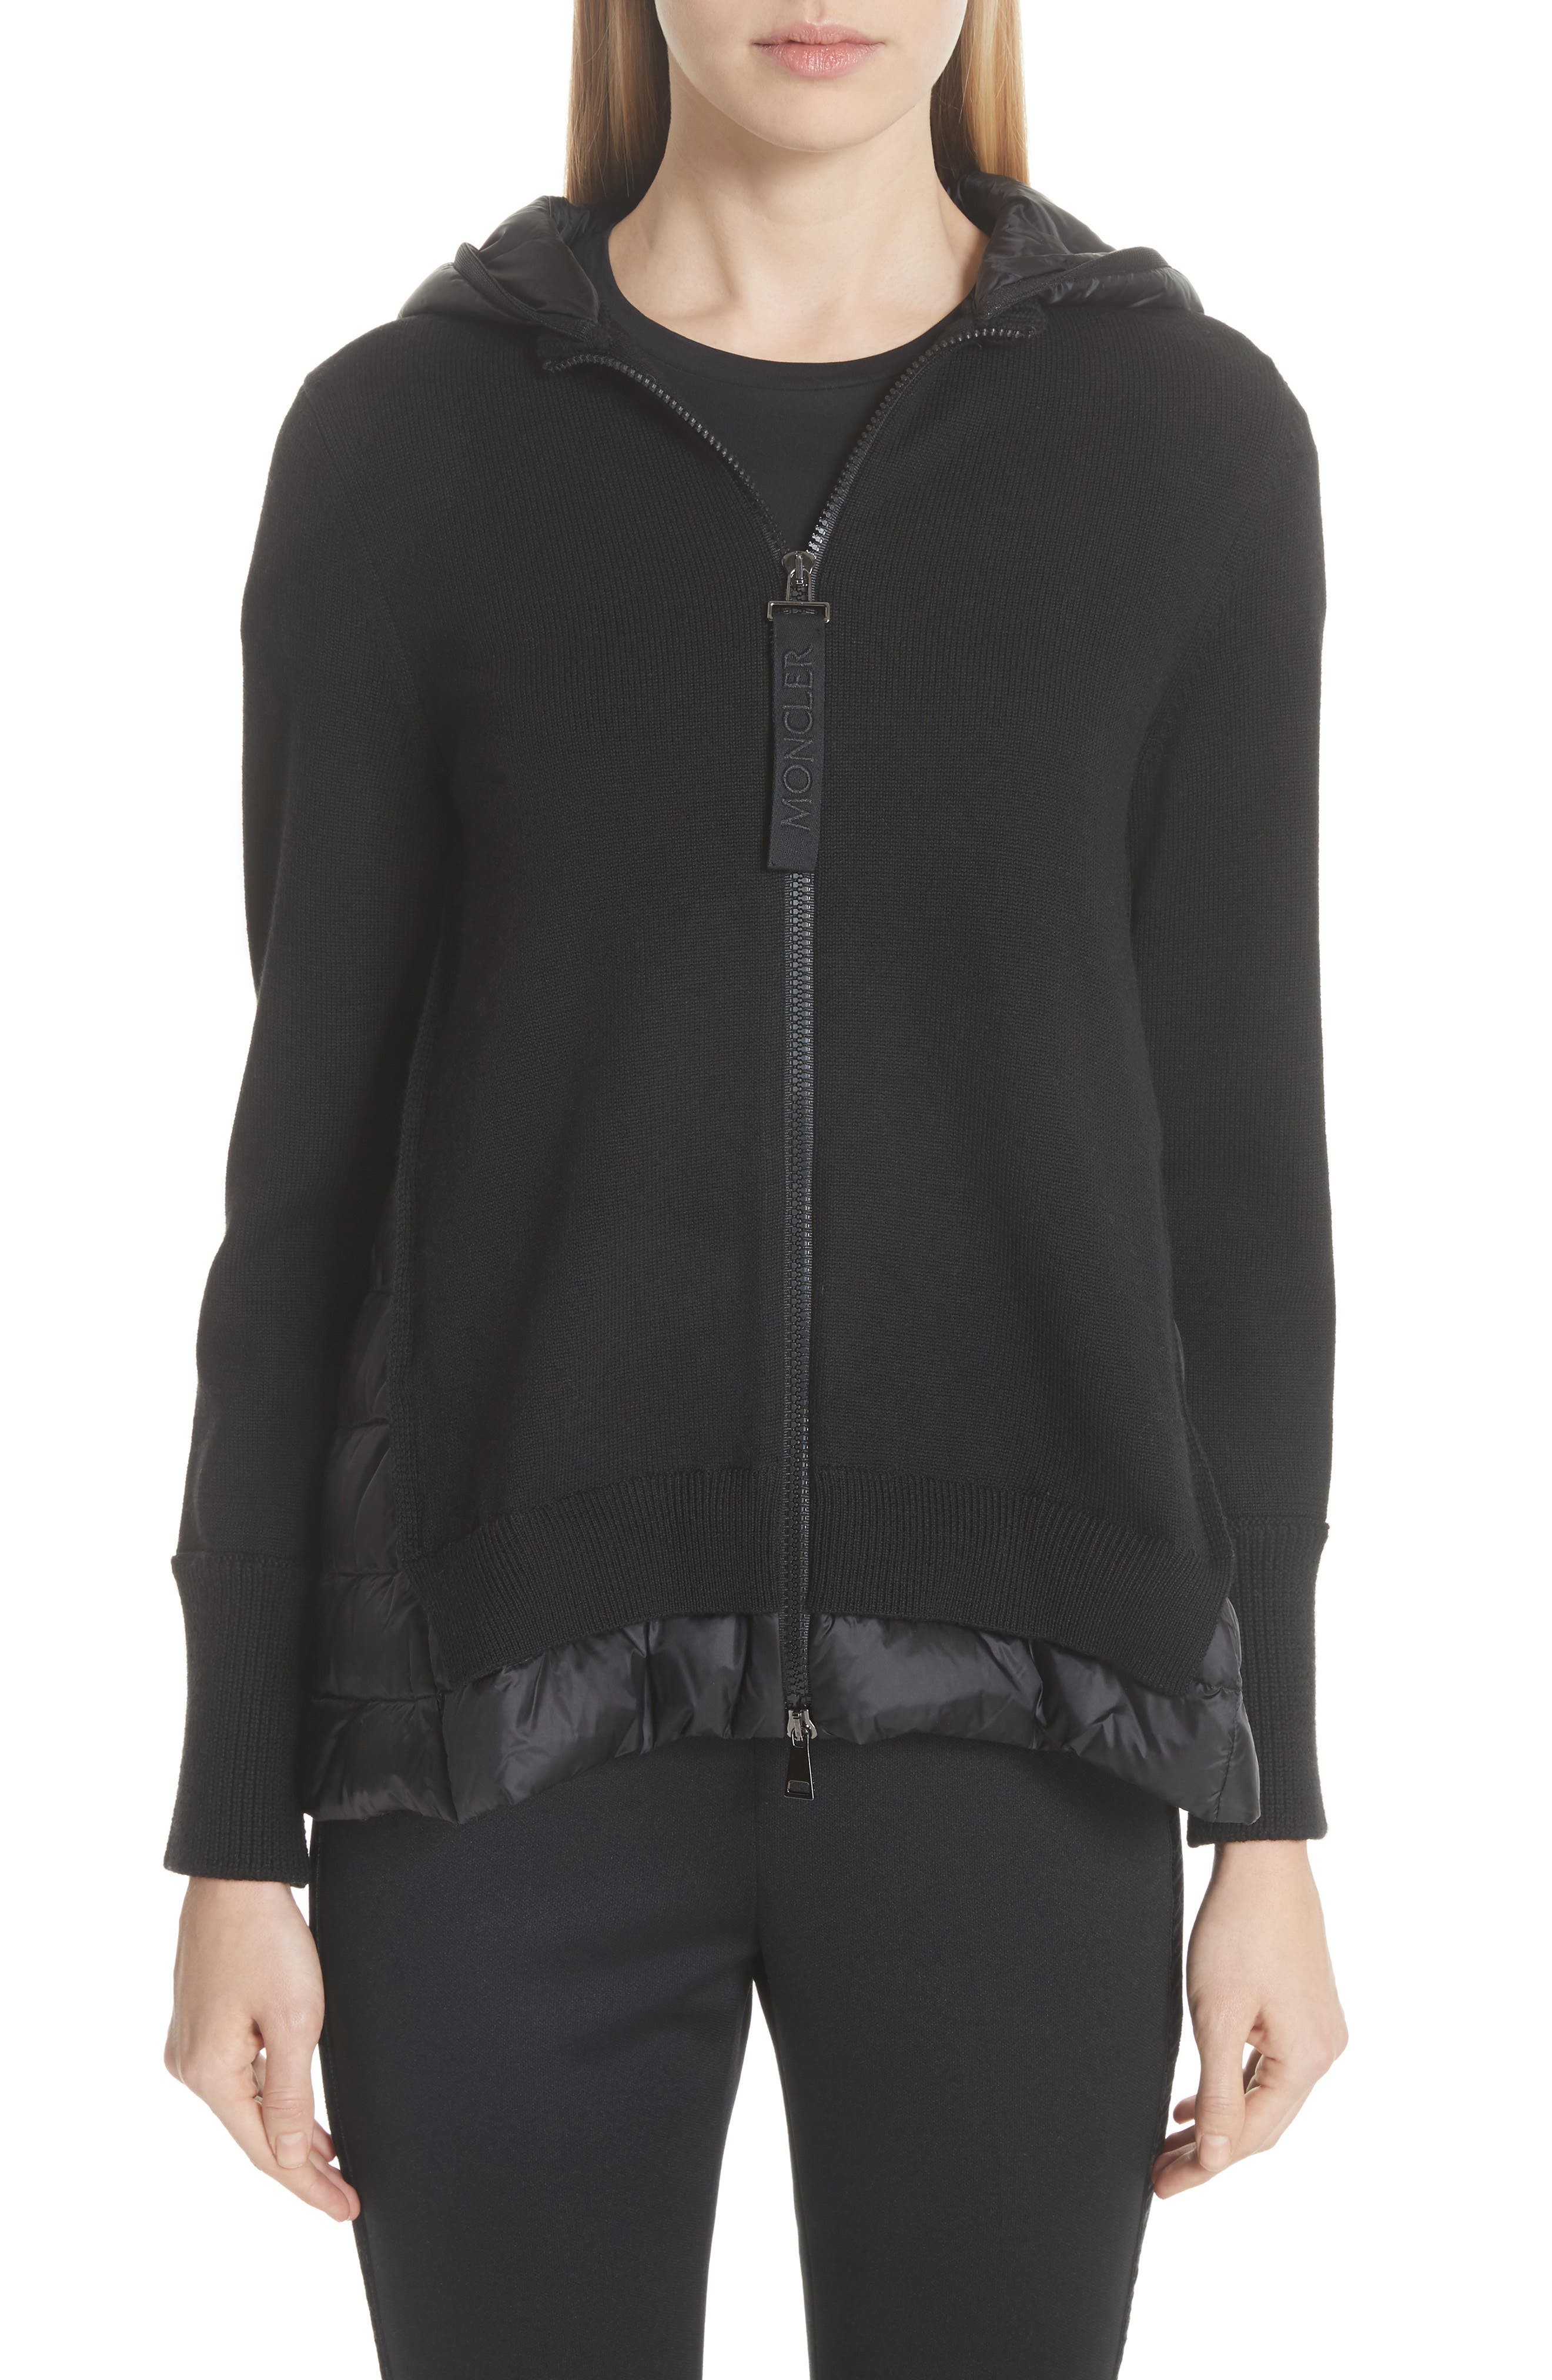 MONCLER, Hooded Quilted Cardigan, Main thumbnail 1, color, BLACK